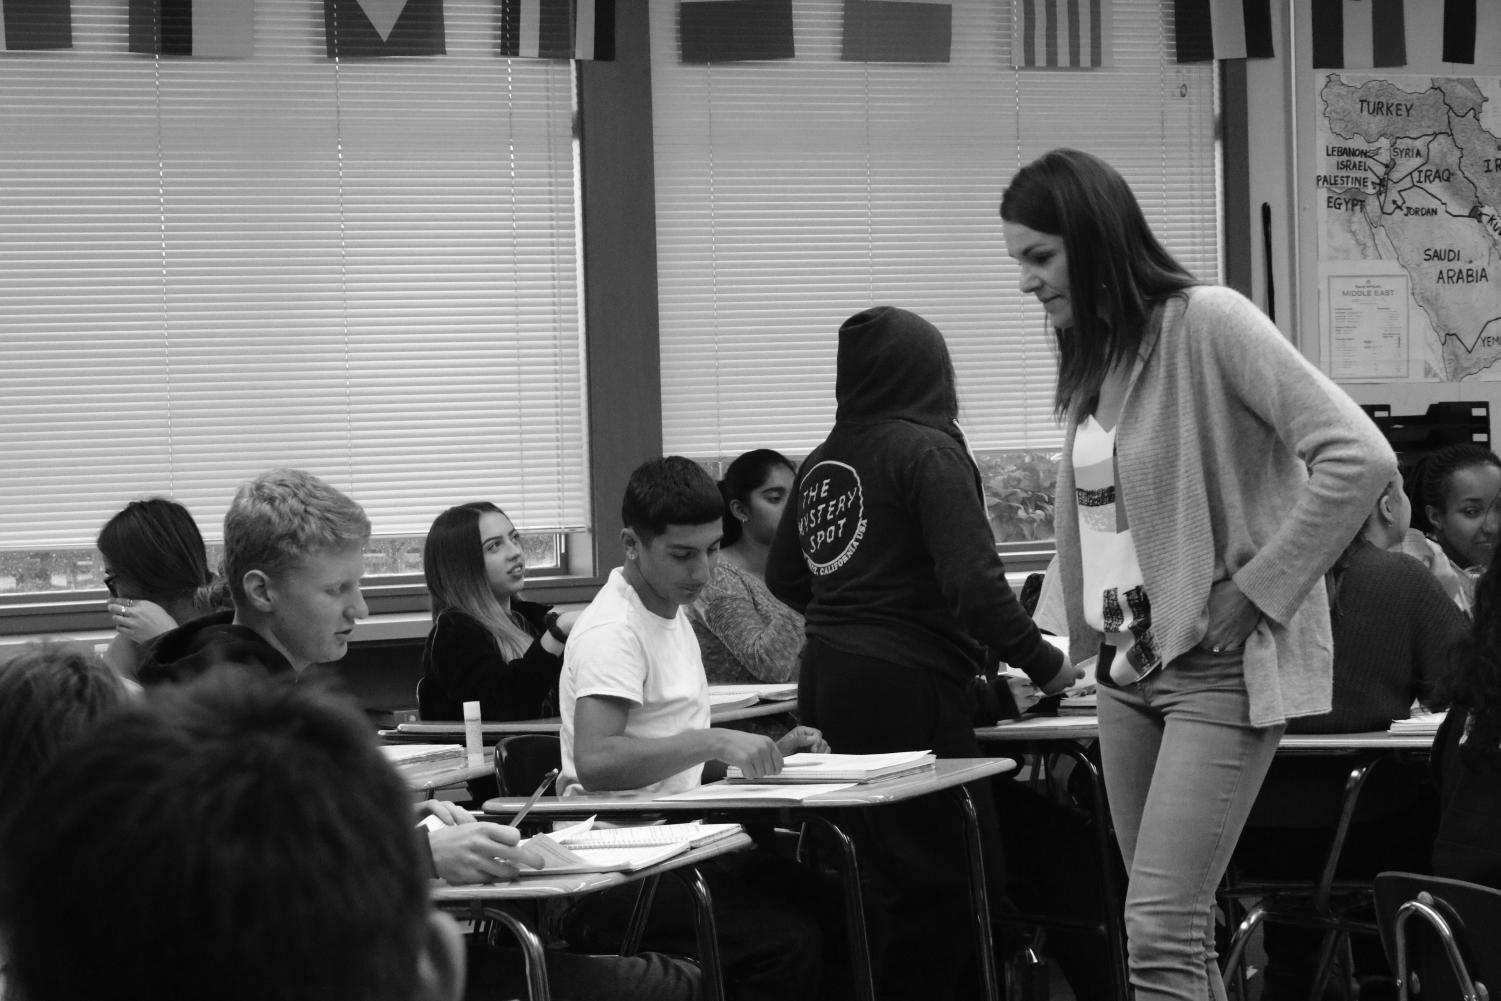 American history teacherAnja Wheeler checks in with students while they do work in class. Wheeler is one of four Cal High teachers that has started teaching their history classes thematically, rather than in the traditional chronological order.